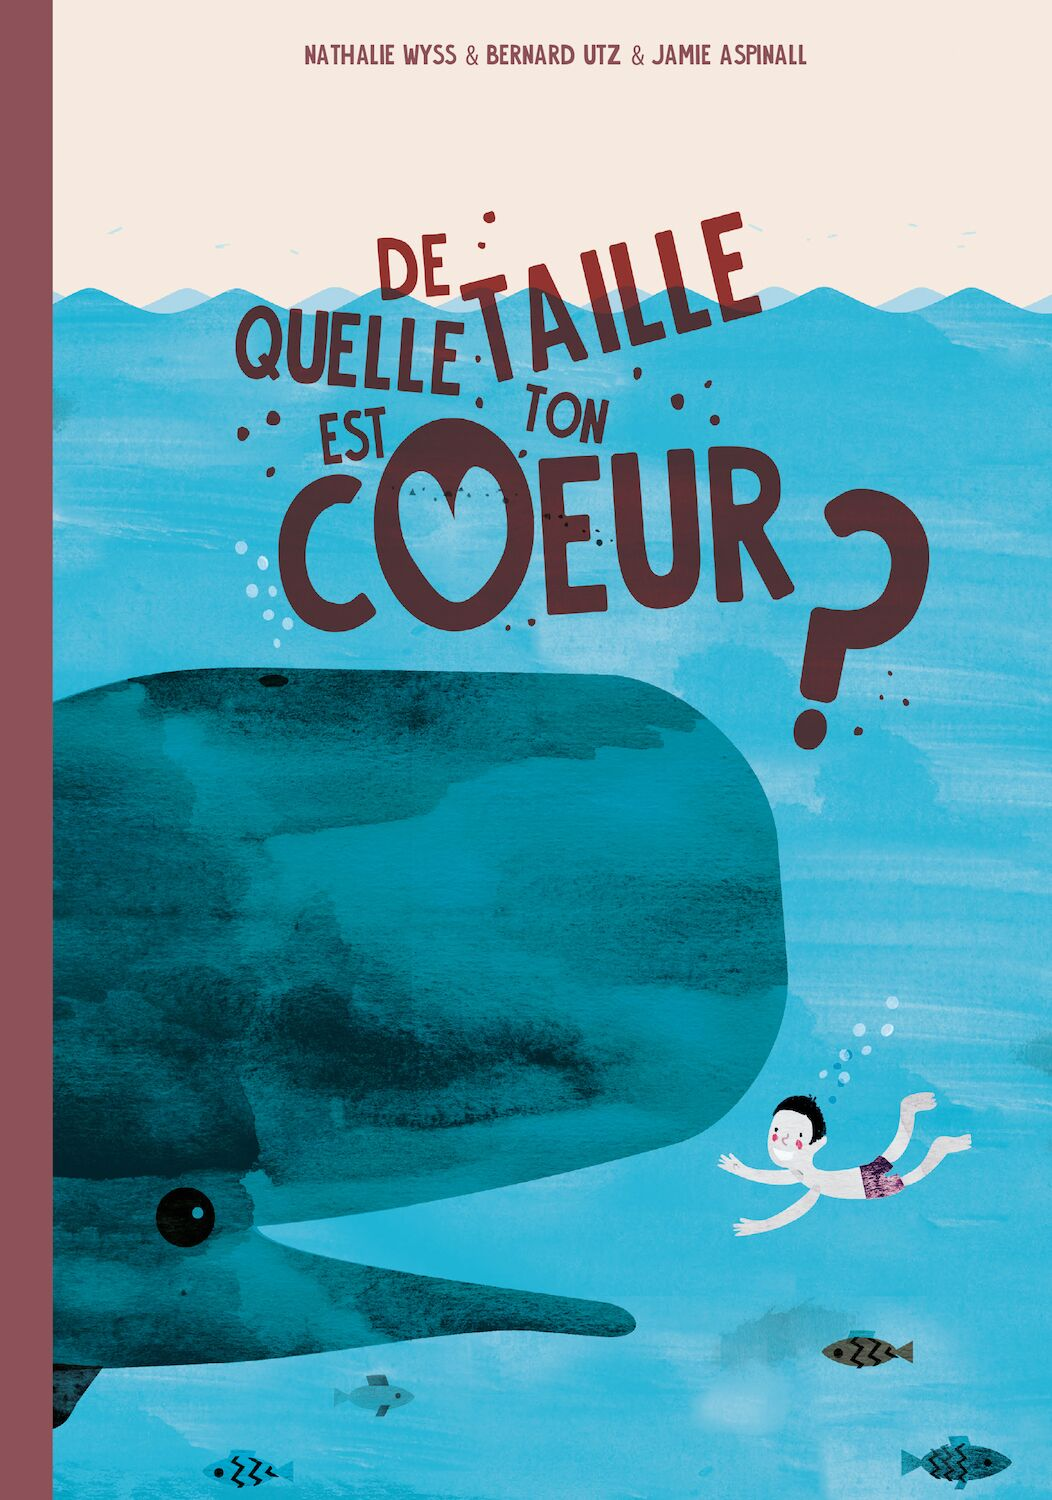 litterature jeunesse, exploration, animaux, documentaires, album, voyage, aventure, humour, poesie, sentiments, emotions